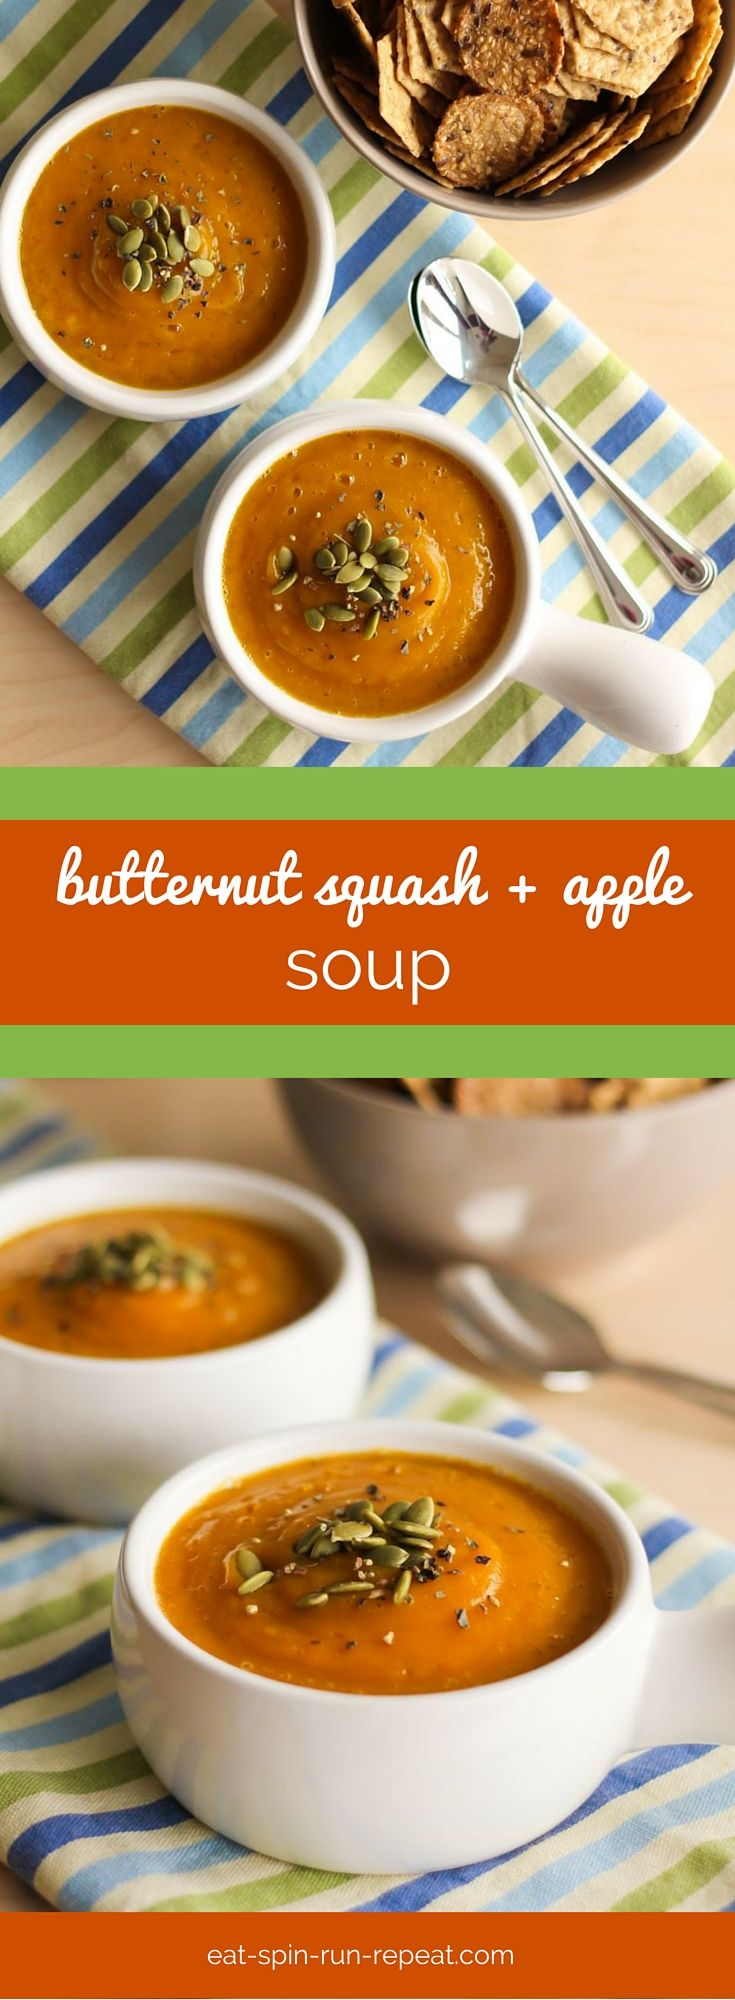 "Velvet Butternut Squash and Apple Soup - This soup is the answer to ""what's for lunch"" on a cold day. Simple whole food ingredients, totally delish."